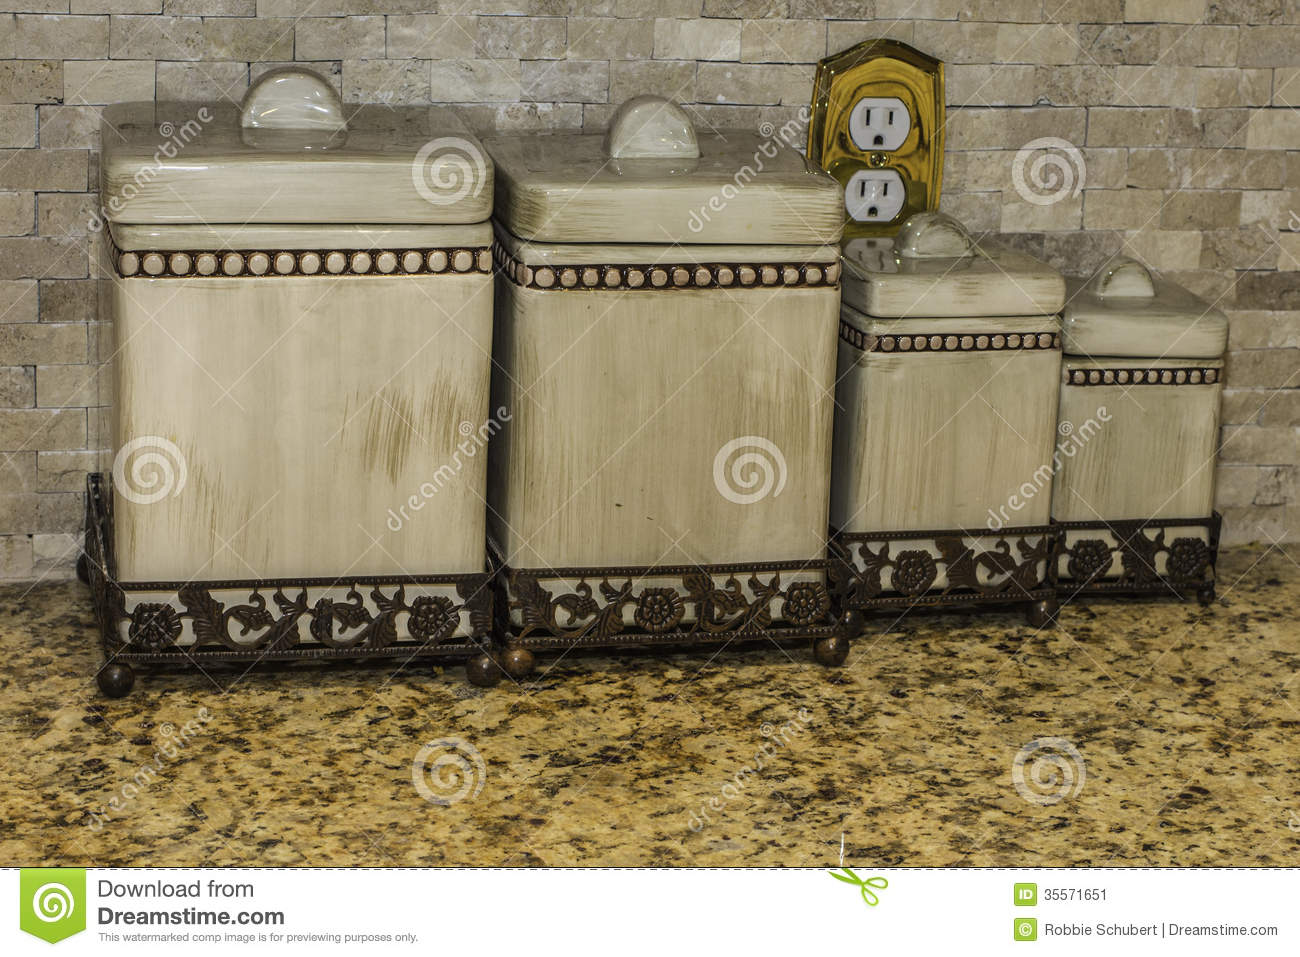 kitchen canisters stock image image 35571651 kitchen object coffee unlabeled canister